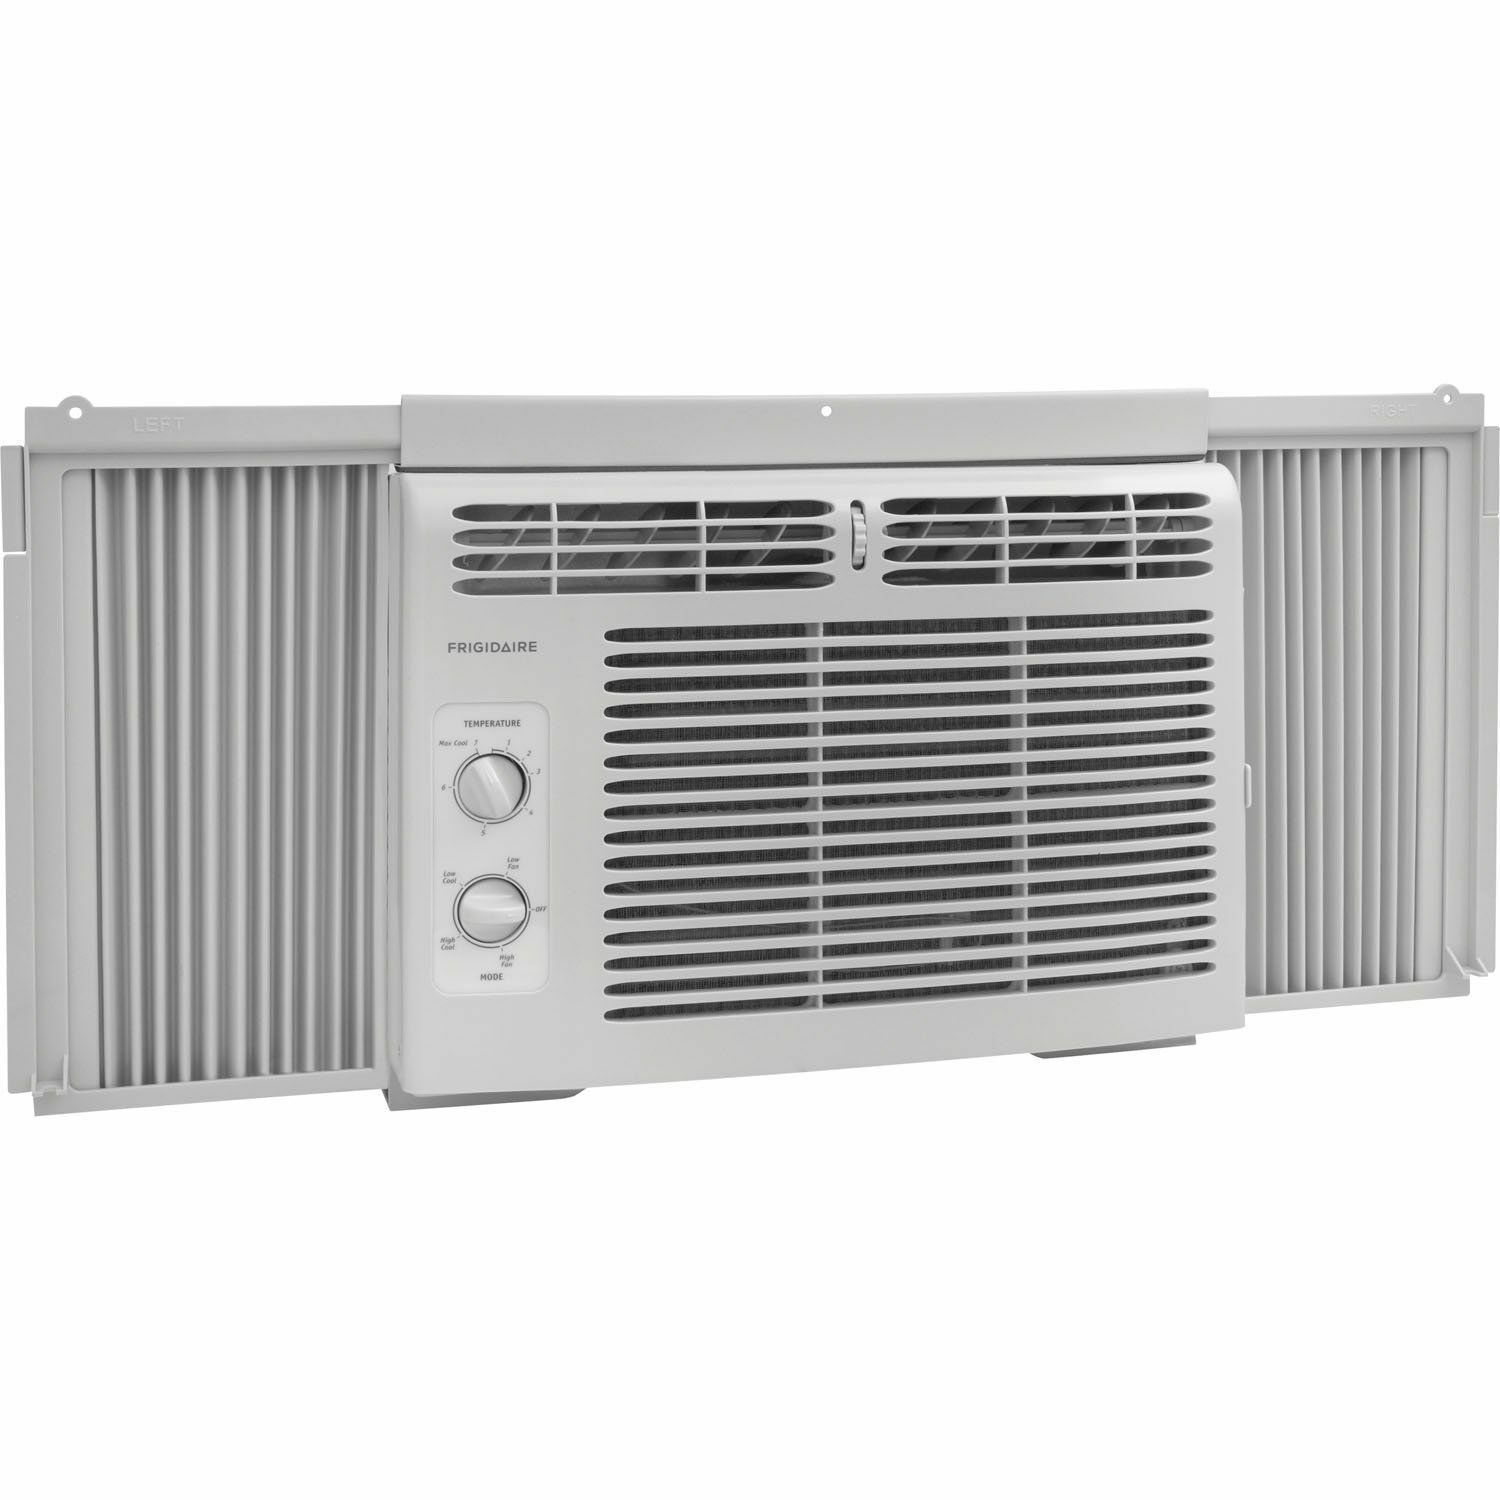 Frigidaire FFRA0511R1 Air Conditioner